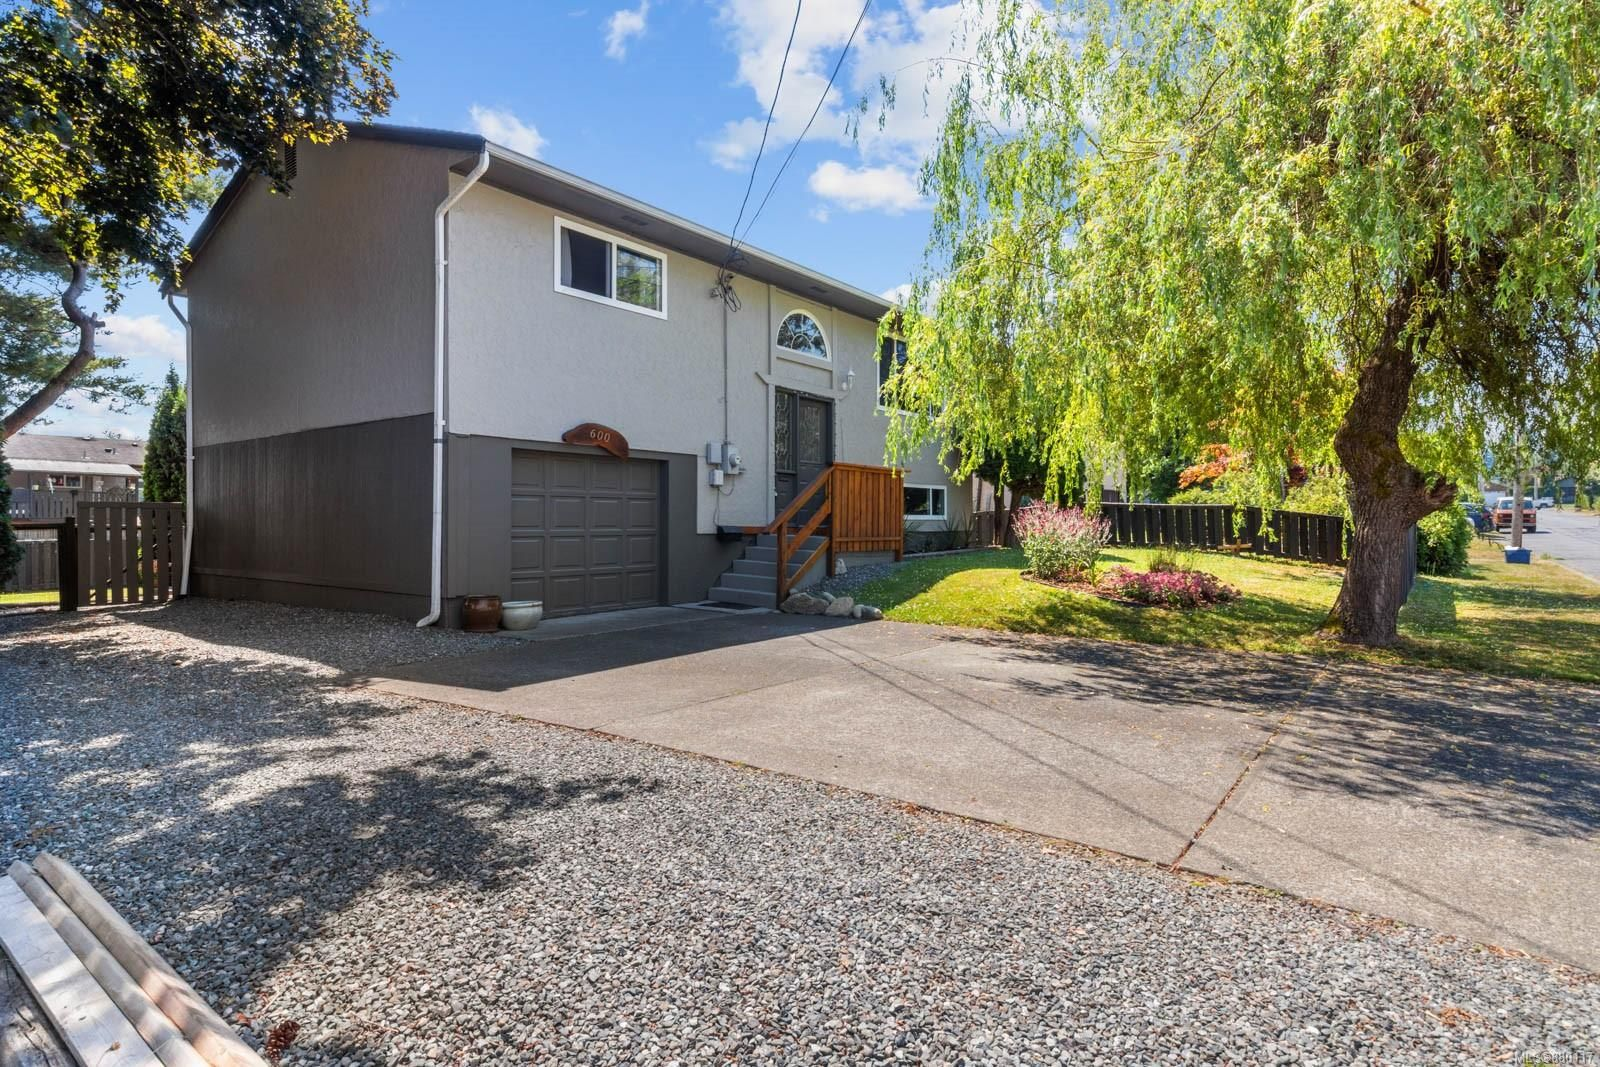 Main Photo: 600 22nd St in : CV Courtenay City House for sale (Comox Valley)  : MLS®# 880117